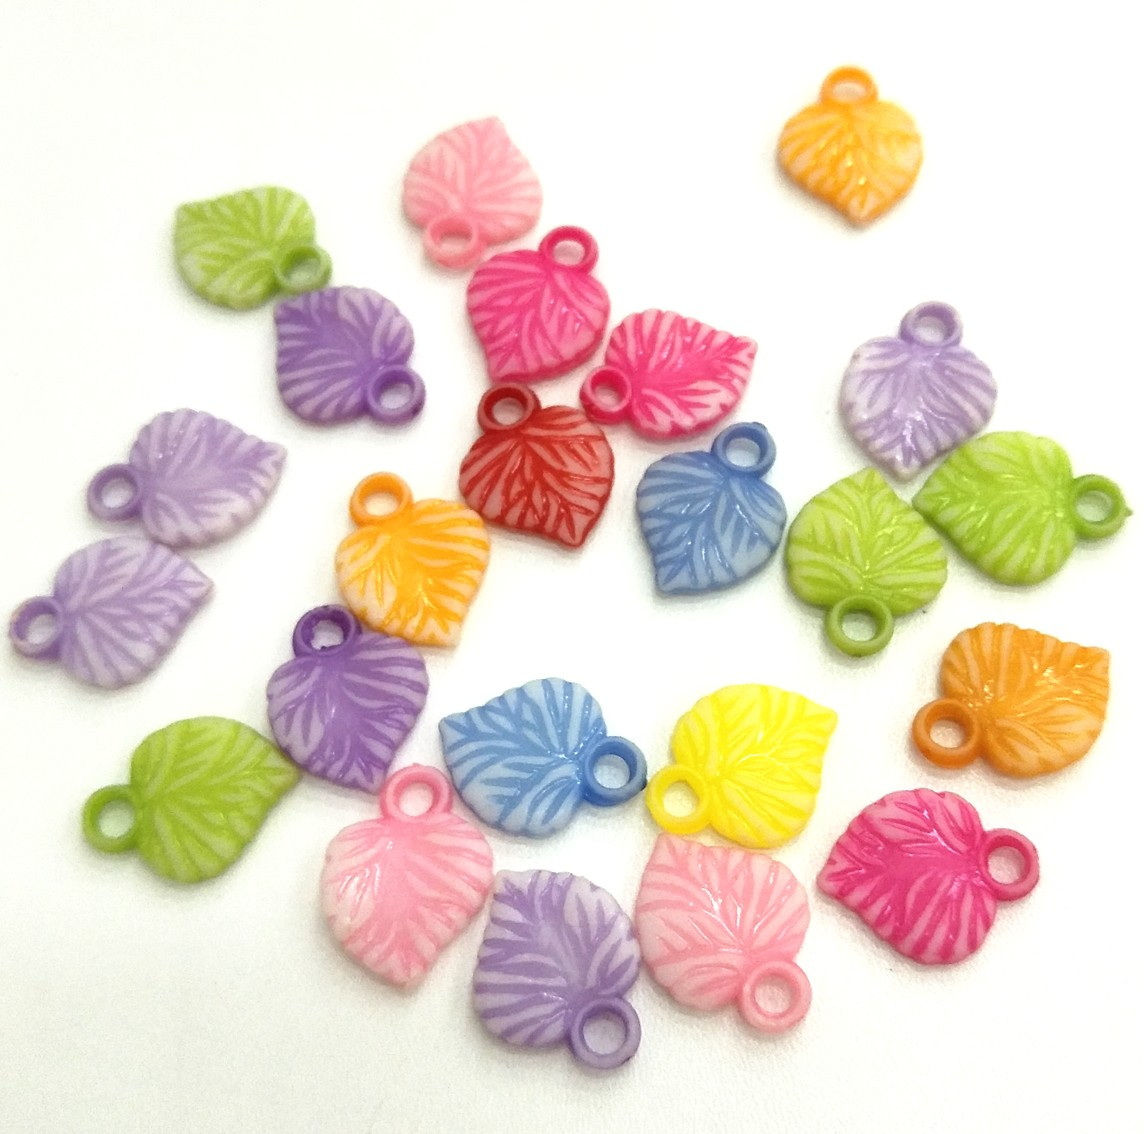 18*14mm 100pcs/lot  Mixed colors Leaves Plastic Spacer Beads Sewing Buttons DIY Handmade Jeweley Making Charms Decorations  eva 1 lot 2 pcs hama fuse perler beads 2 6mm big square pegboards connecting pegoard mini hama beads jigsaw puzzle handmade diy